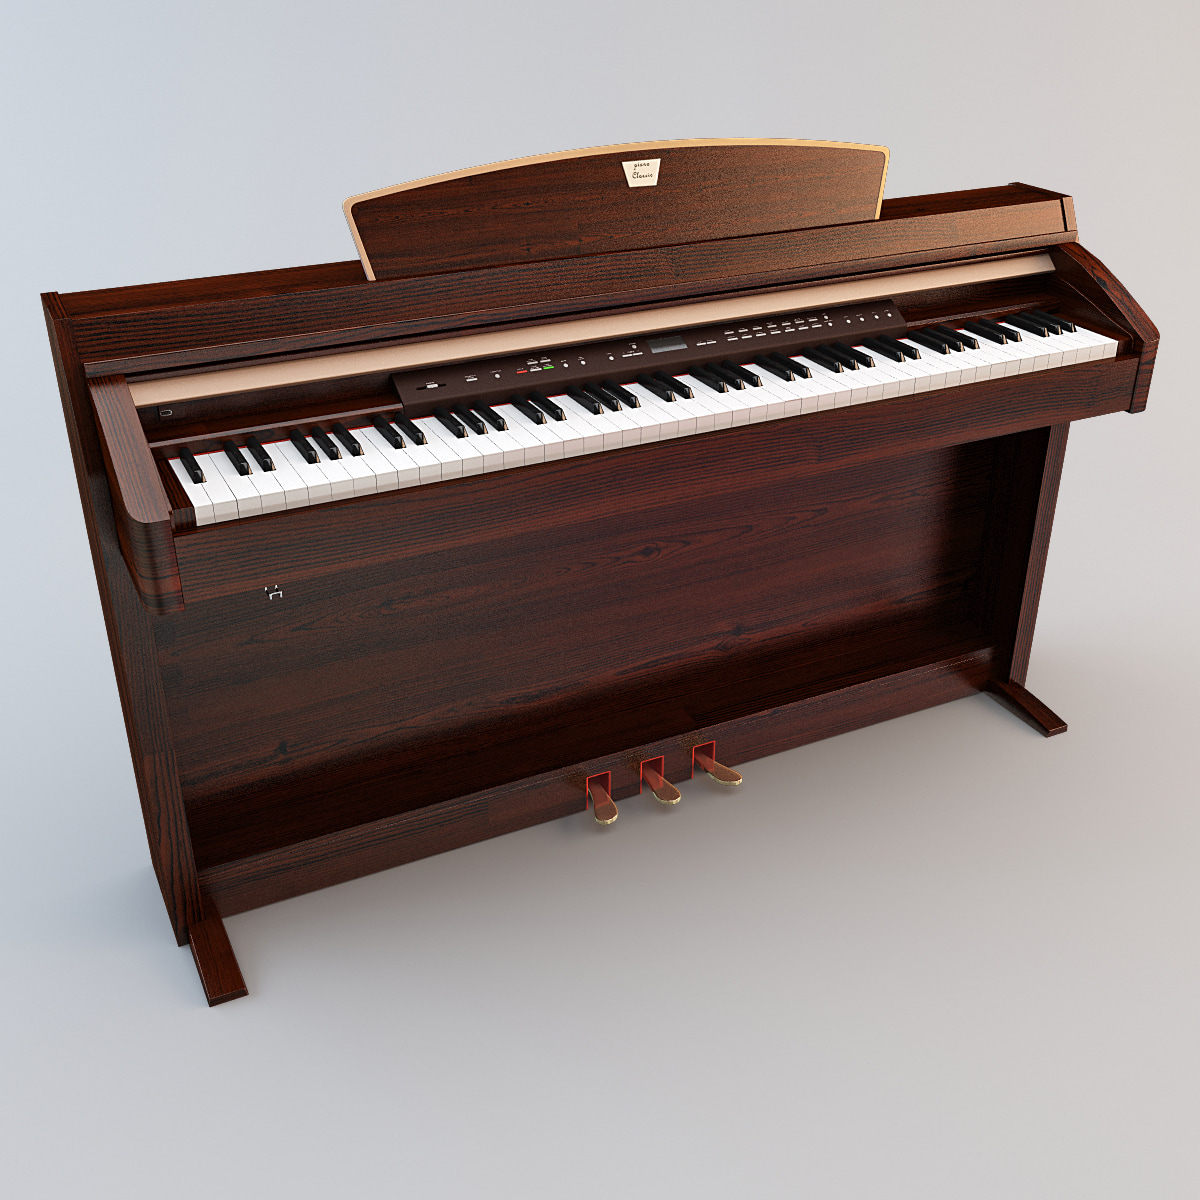 3ds max piano musical instrument